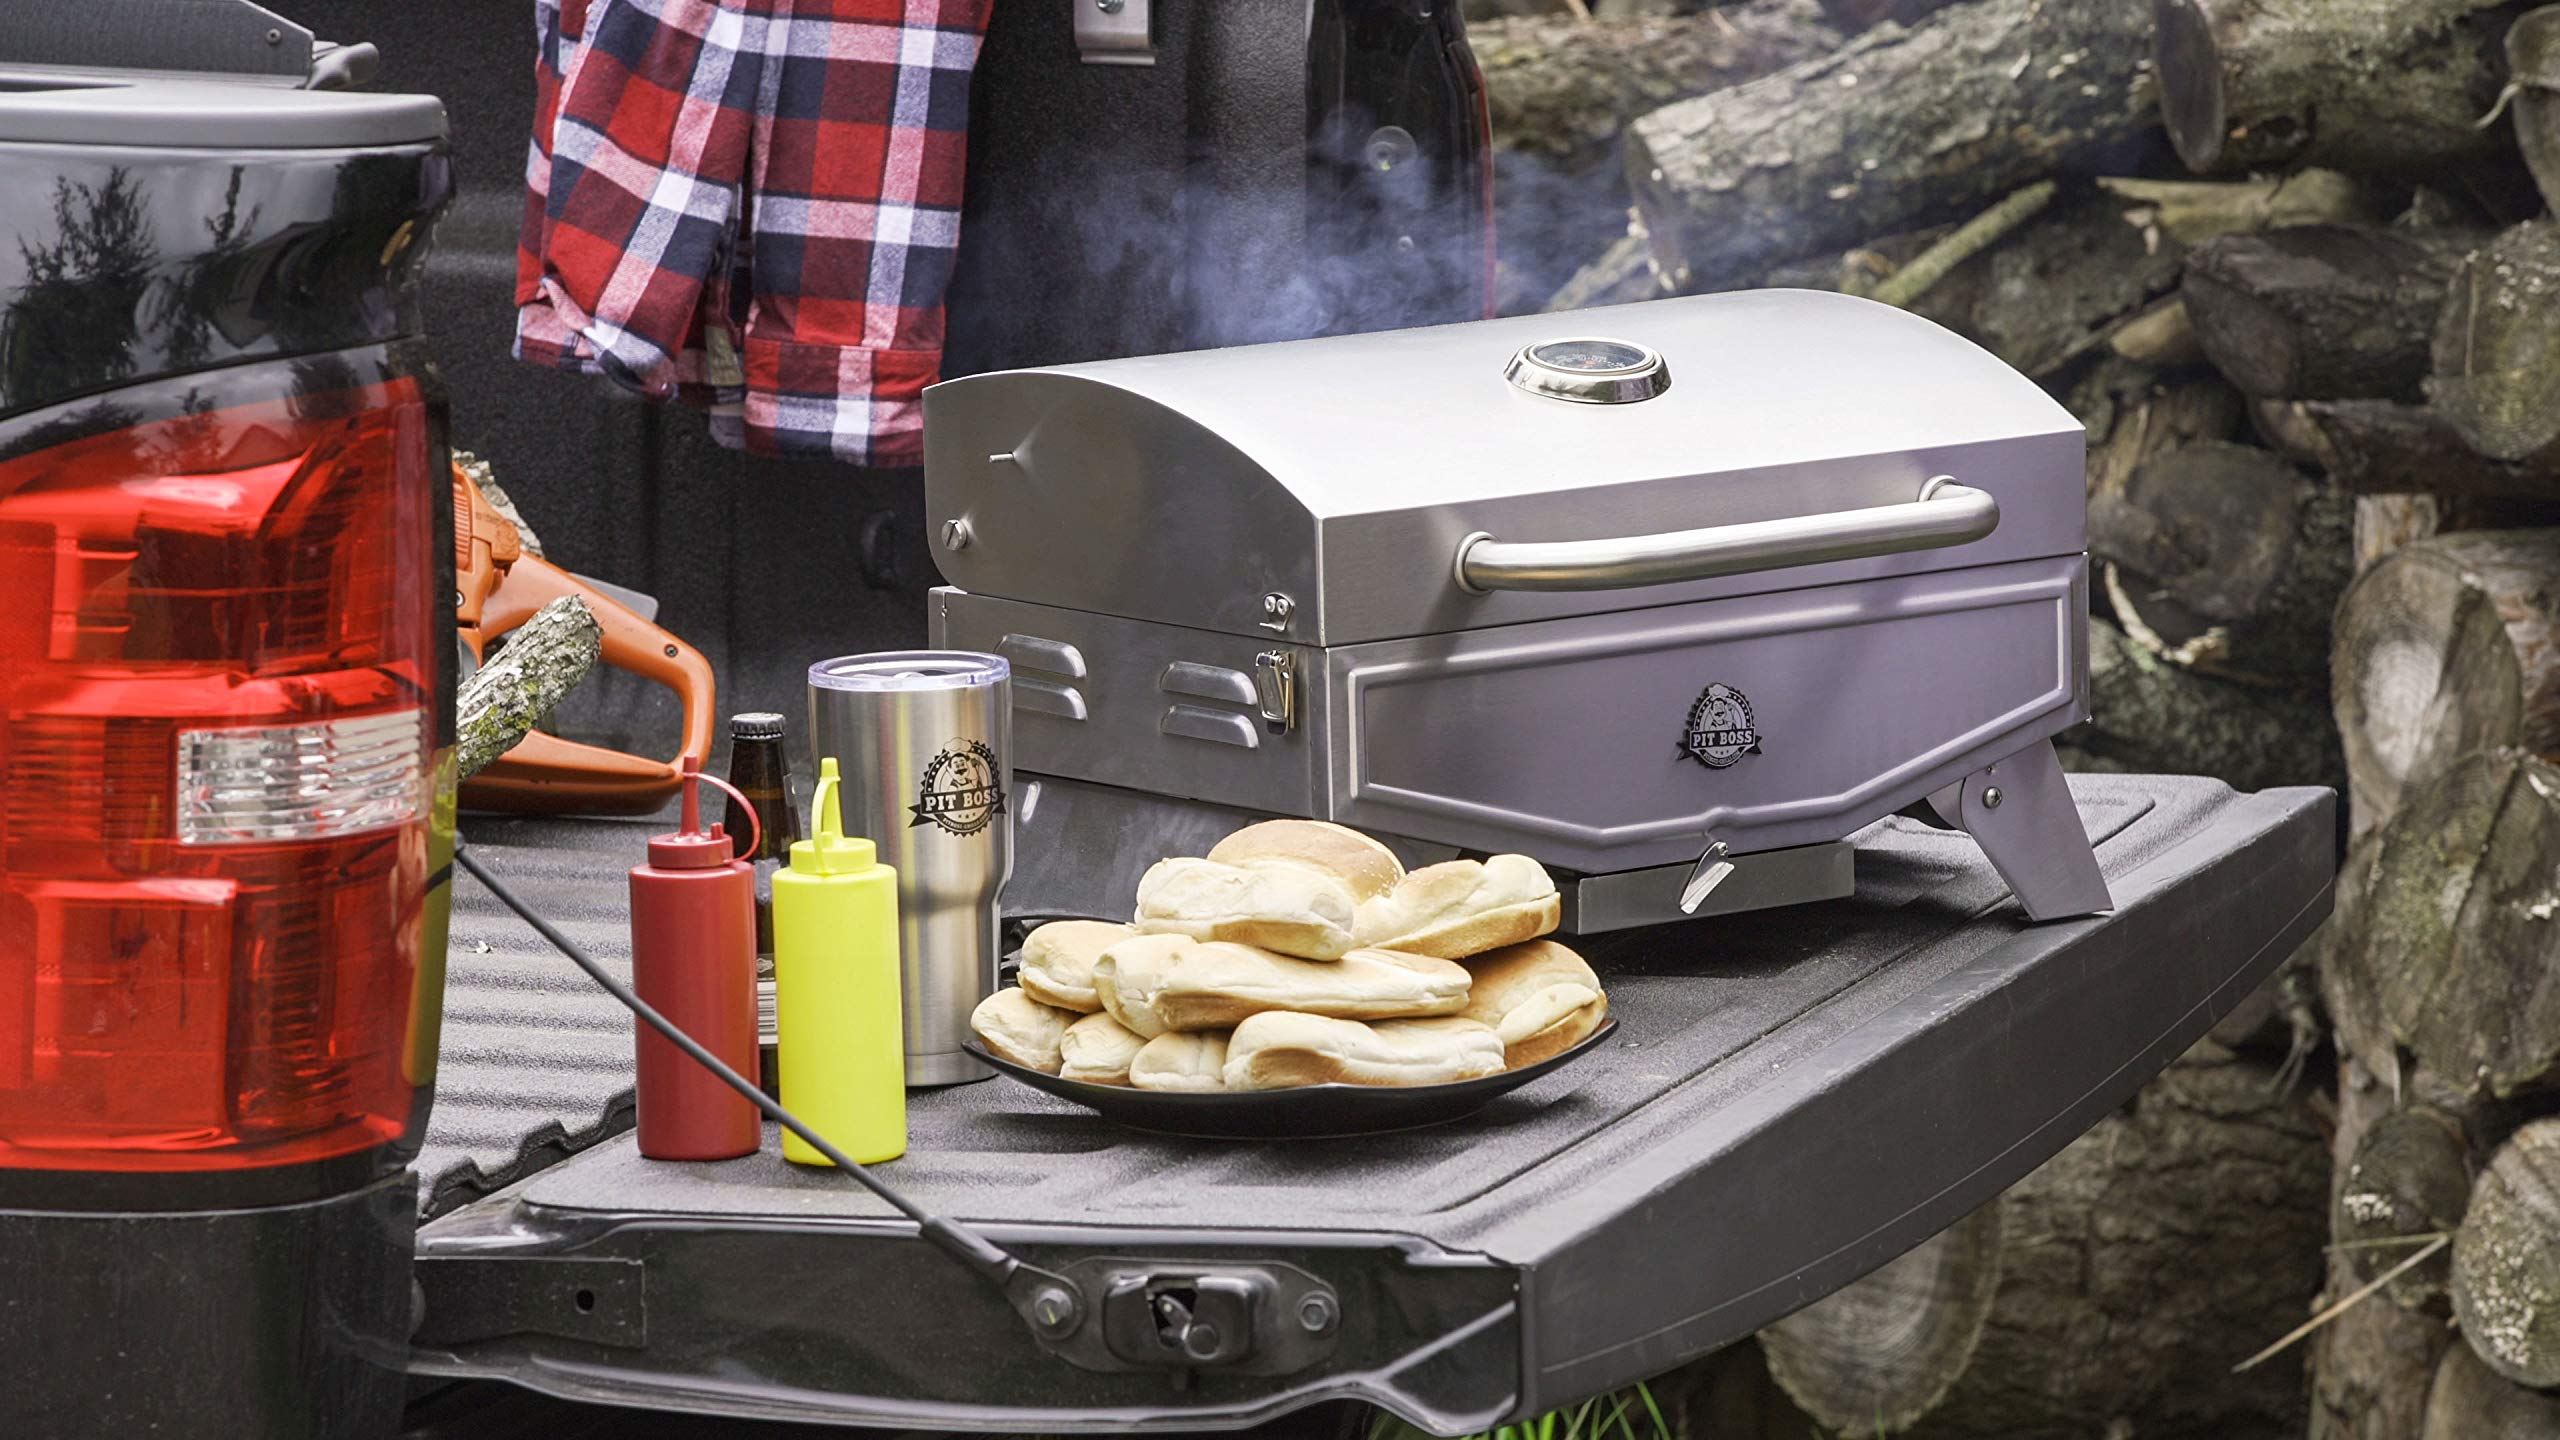 Pit Boss Grills PB100P1 Pit Stop Single-Burner Portable Tabletop Grill by Pit Boss Grills (Image #11)